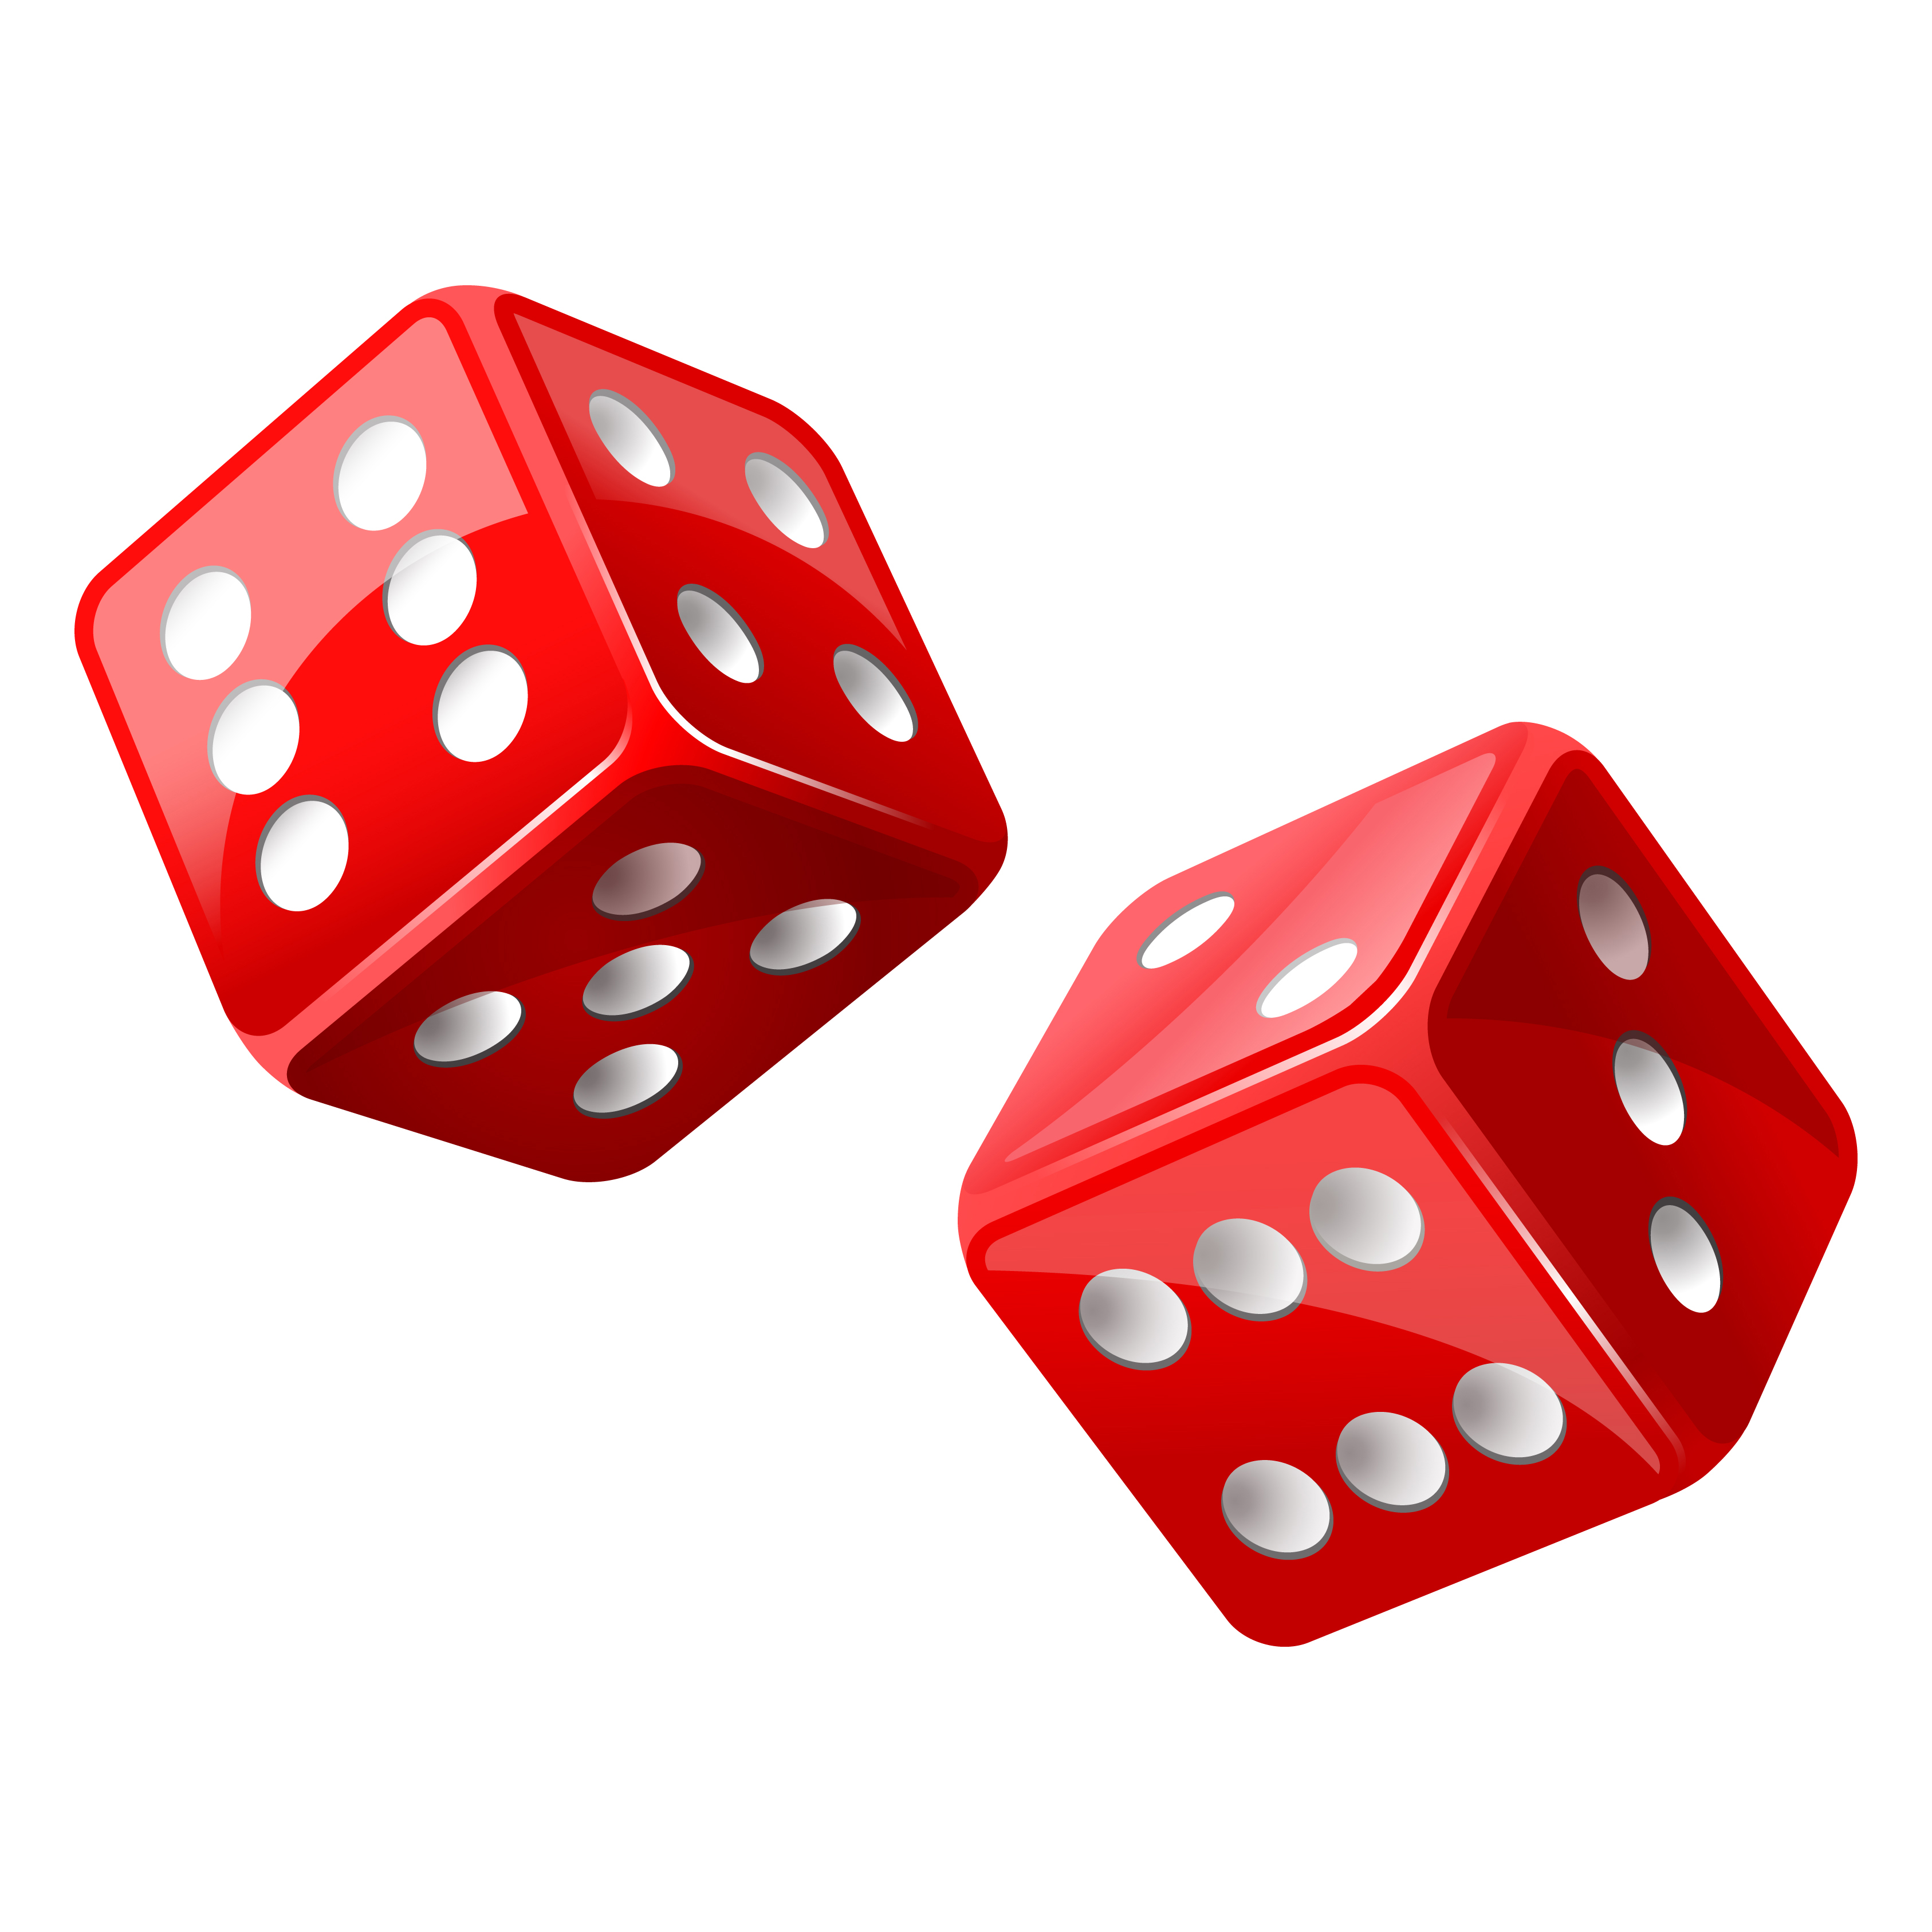 Rolling Dice Png & Free Rolling Dice.png Transparent ...